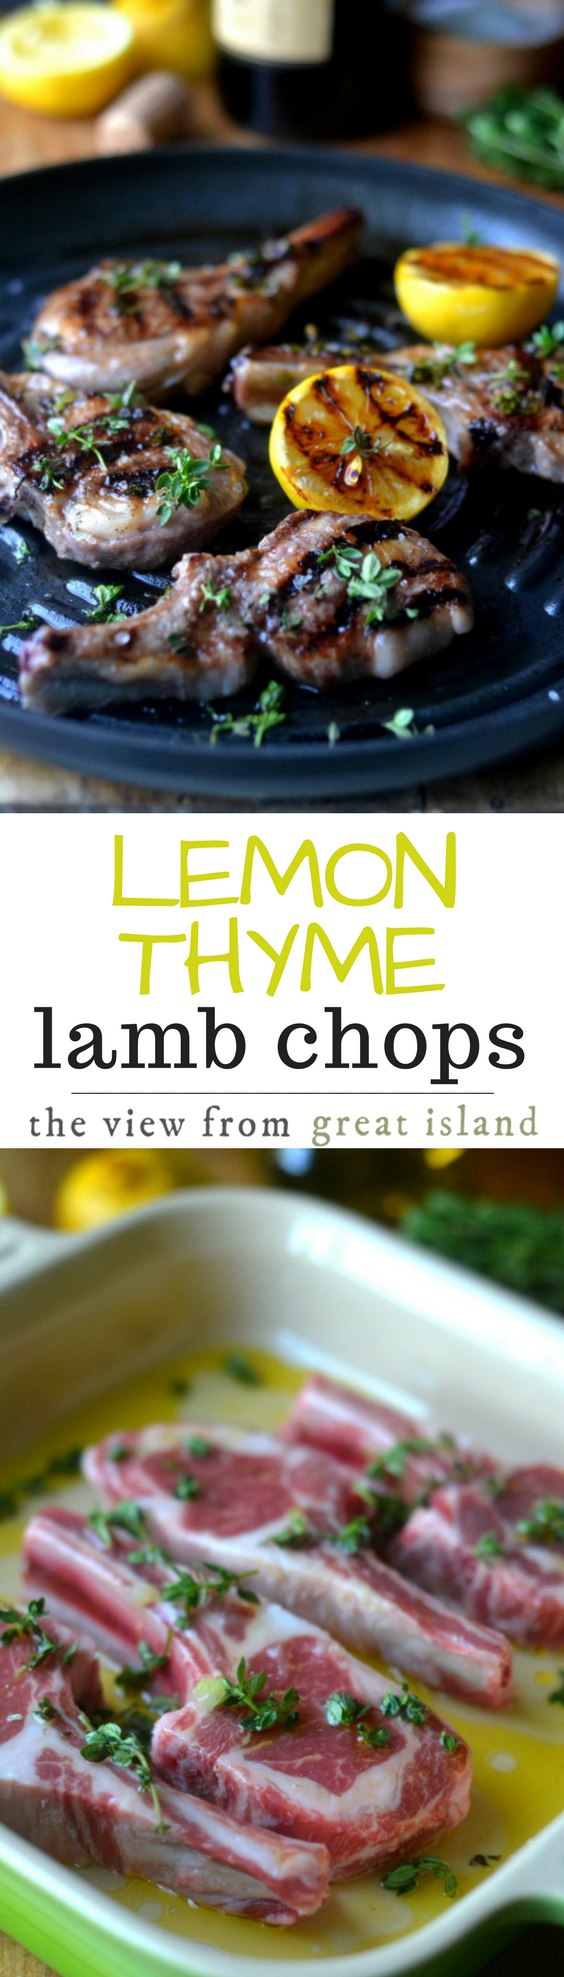 Lemon Thyme Lamb Chops is an elegant 30 minute meal that is as vibrant and delicious as it is quick and easy to put on the table. | main course | meat | dinner | grilling |